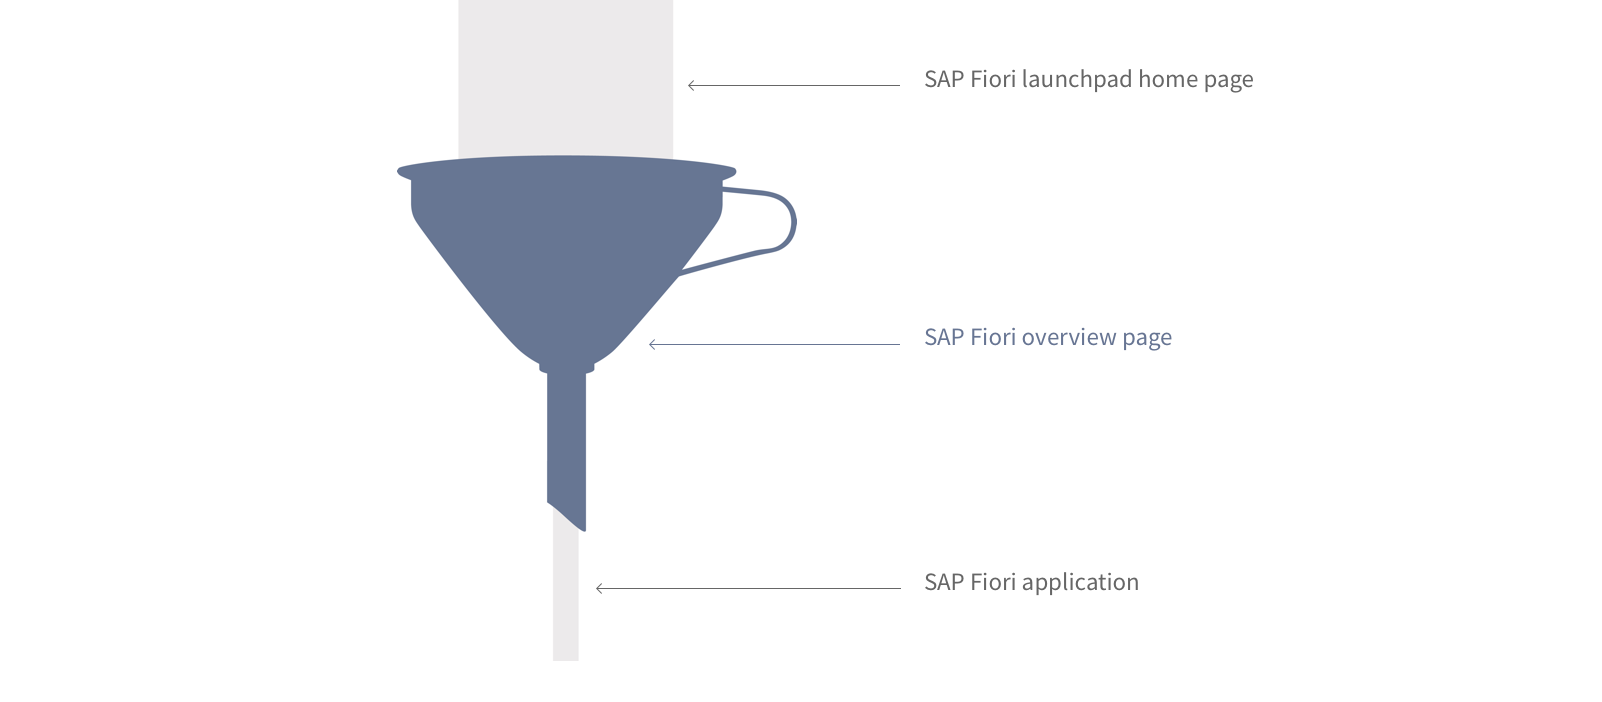 Visual about the Overview Page (Source: SAP)